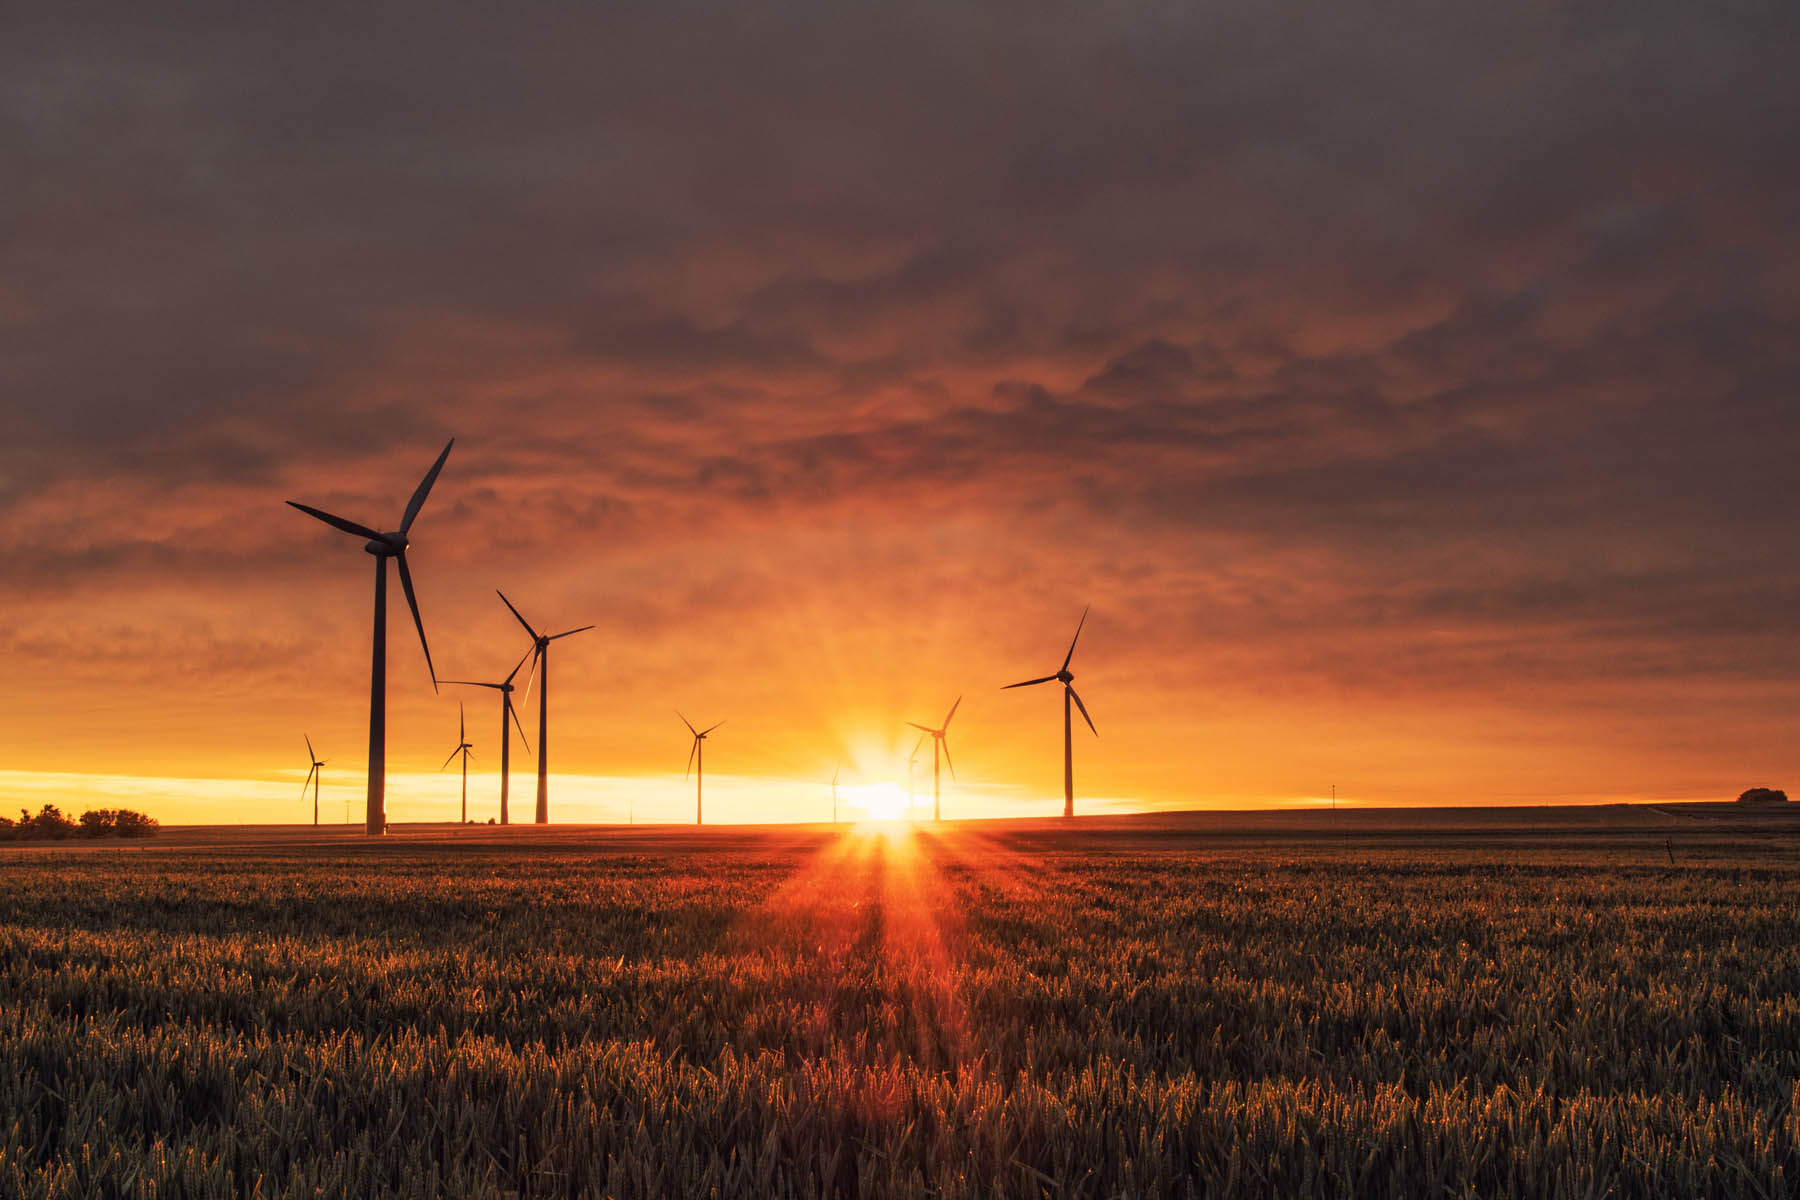 Evaluating Sustainability of Wind Energy: Fact-Based Insights Through LCA